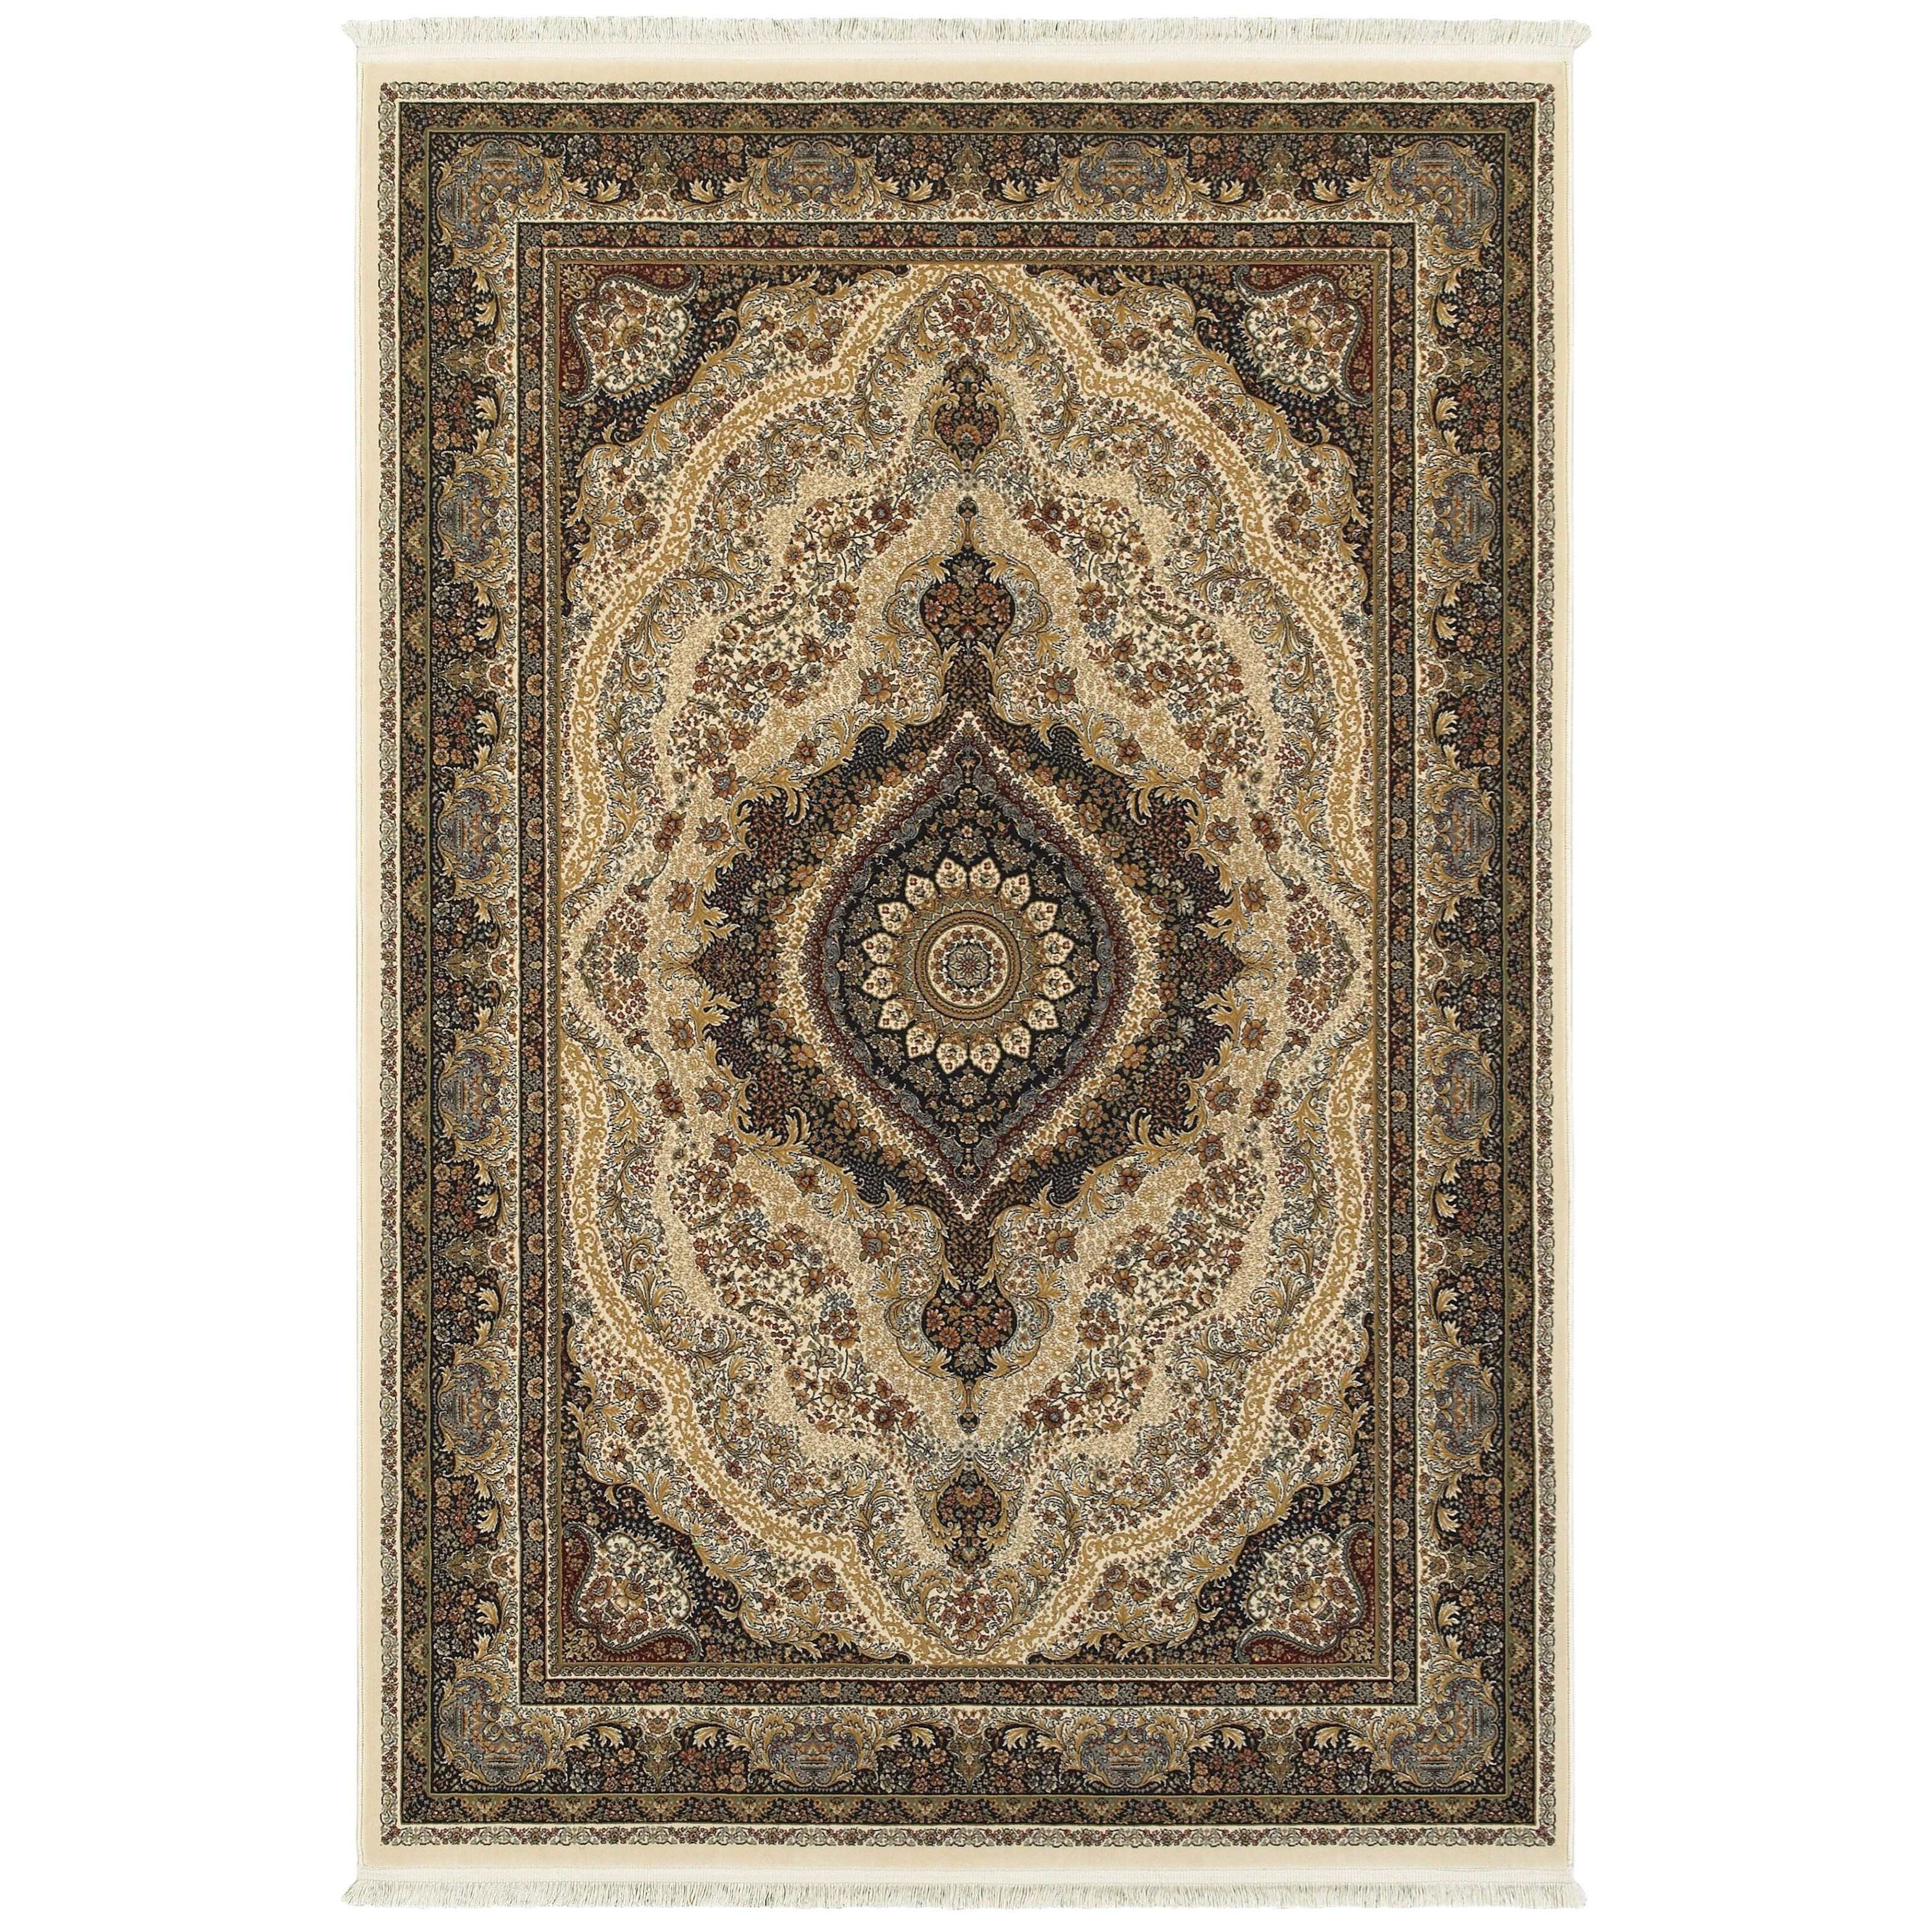 "Masterpiece 7'10"" X 10'10"" Rectangle Rug by Oriental Weavers at Darvin Furniture"